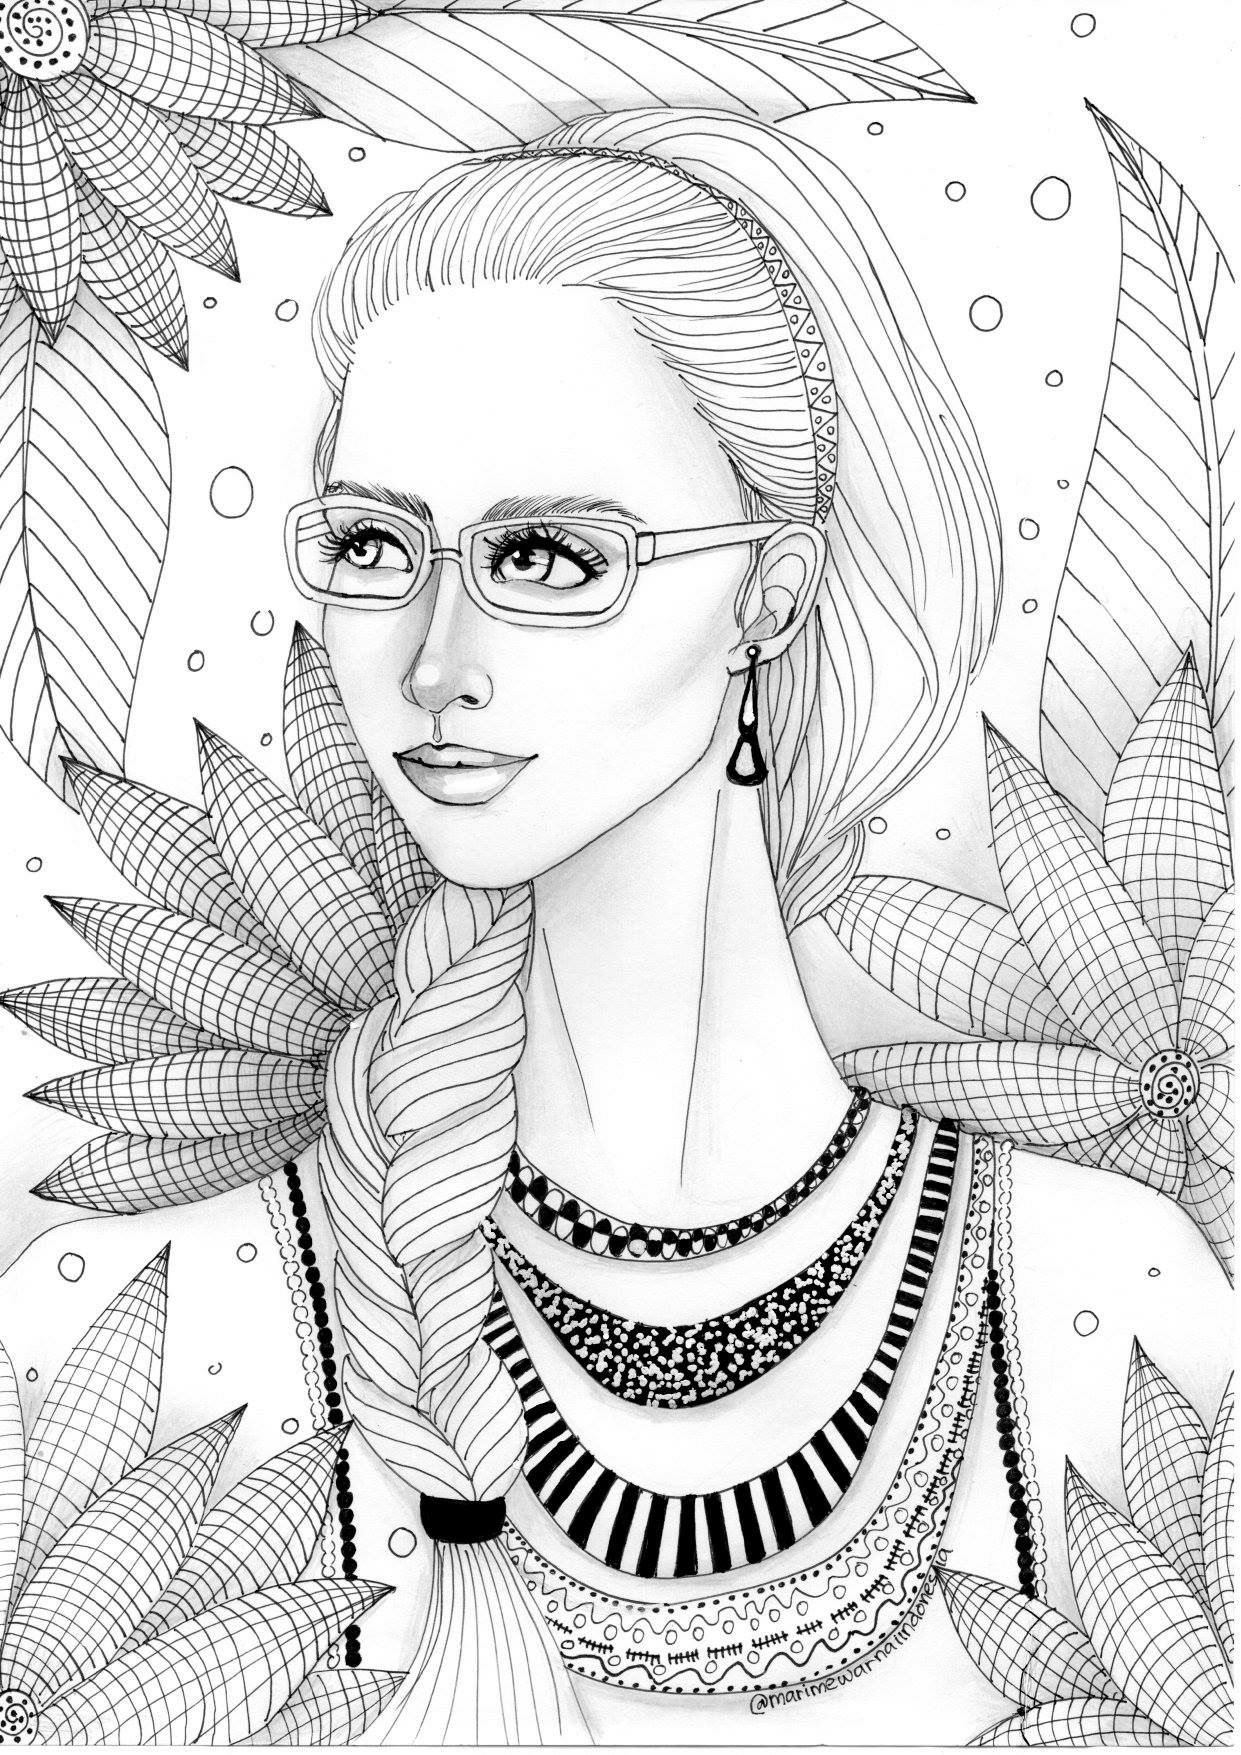 Free Coloring Page By Dinny M S Grayscale Coloring Free Coloring Pages Coloring Pages